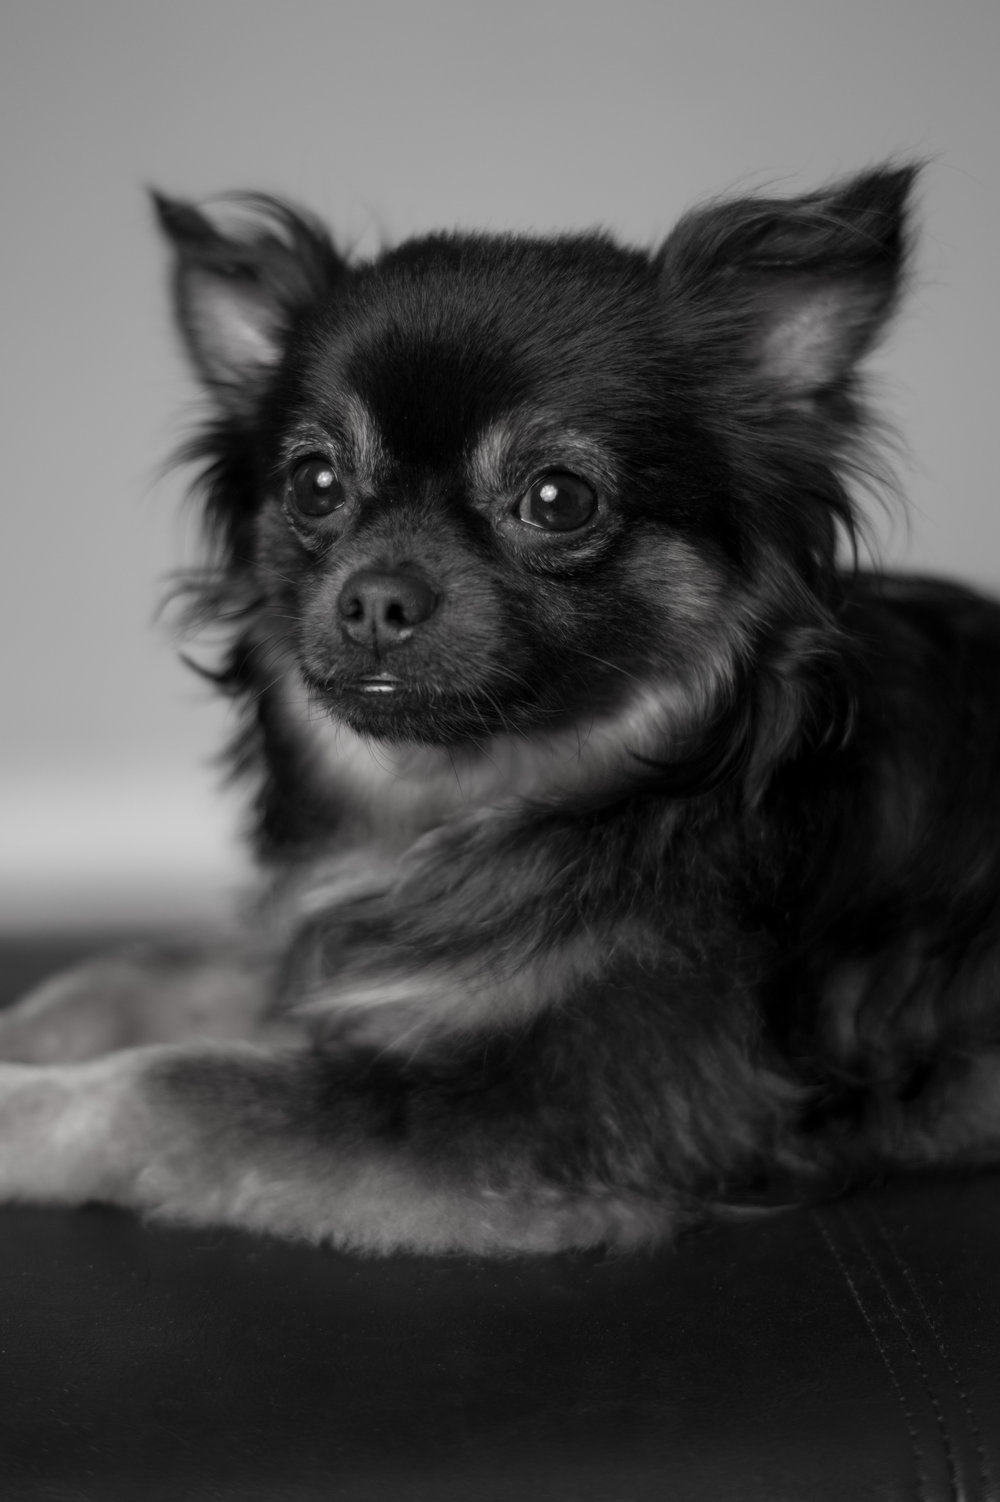 Black and White portrait of Rocky